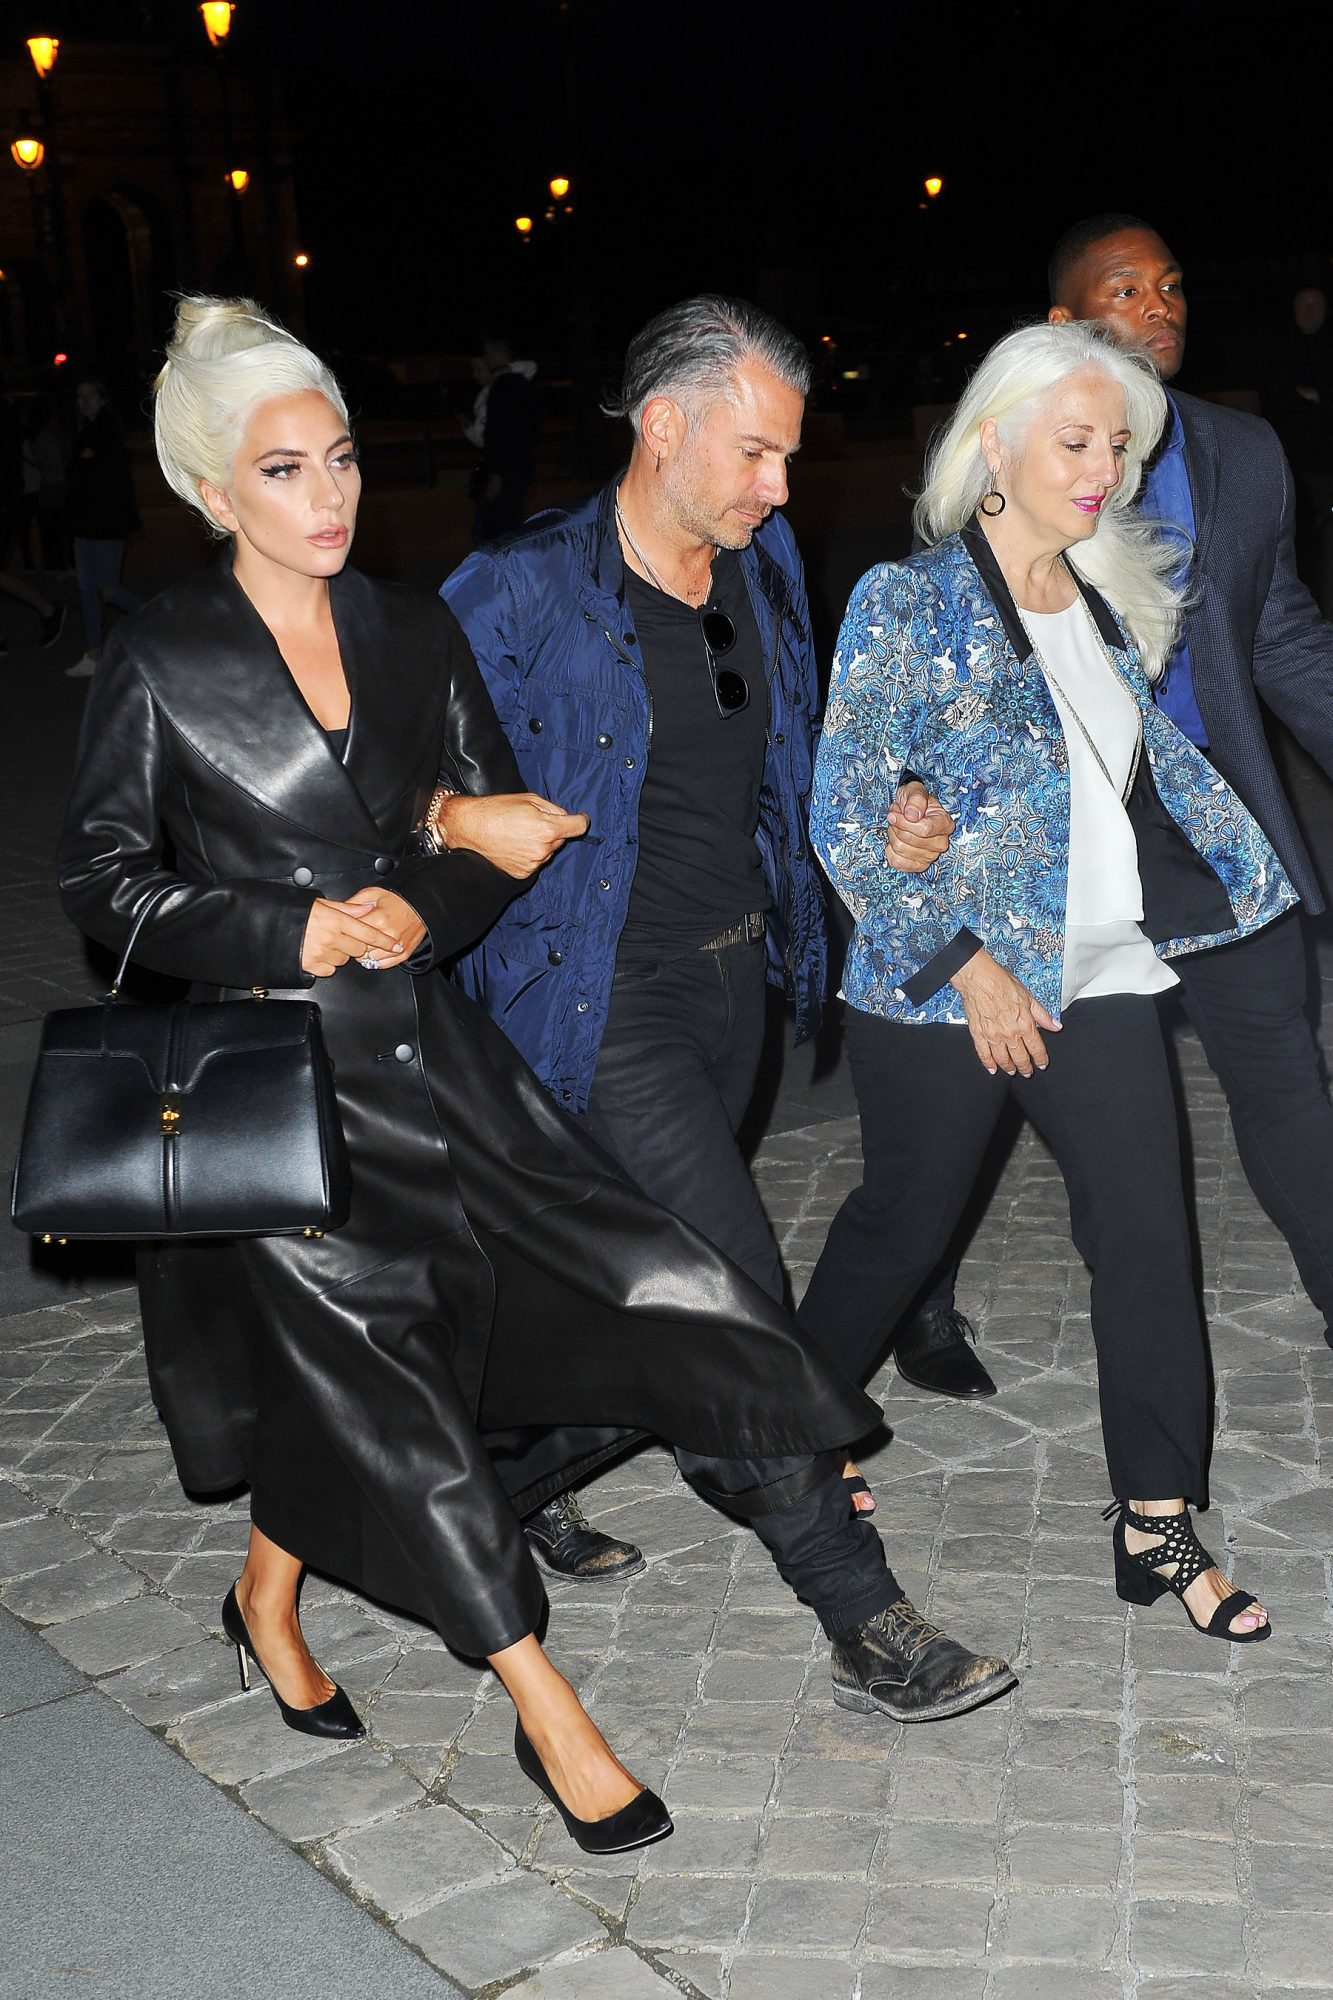 Lady Gaga, Christian Carino and her Mother Cynthia Germanotta Visit The Louvre